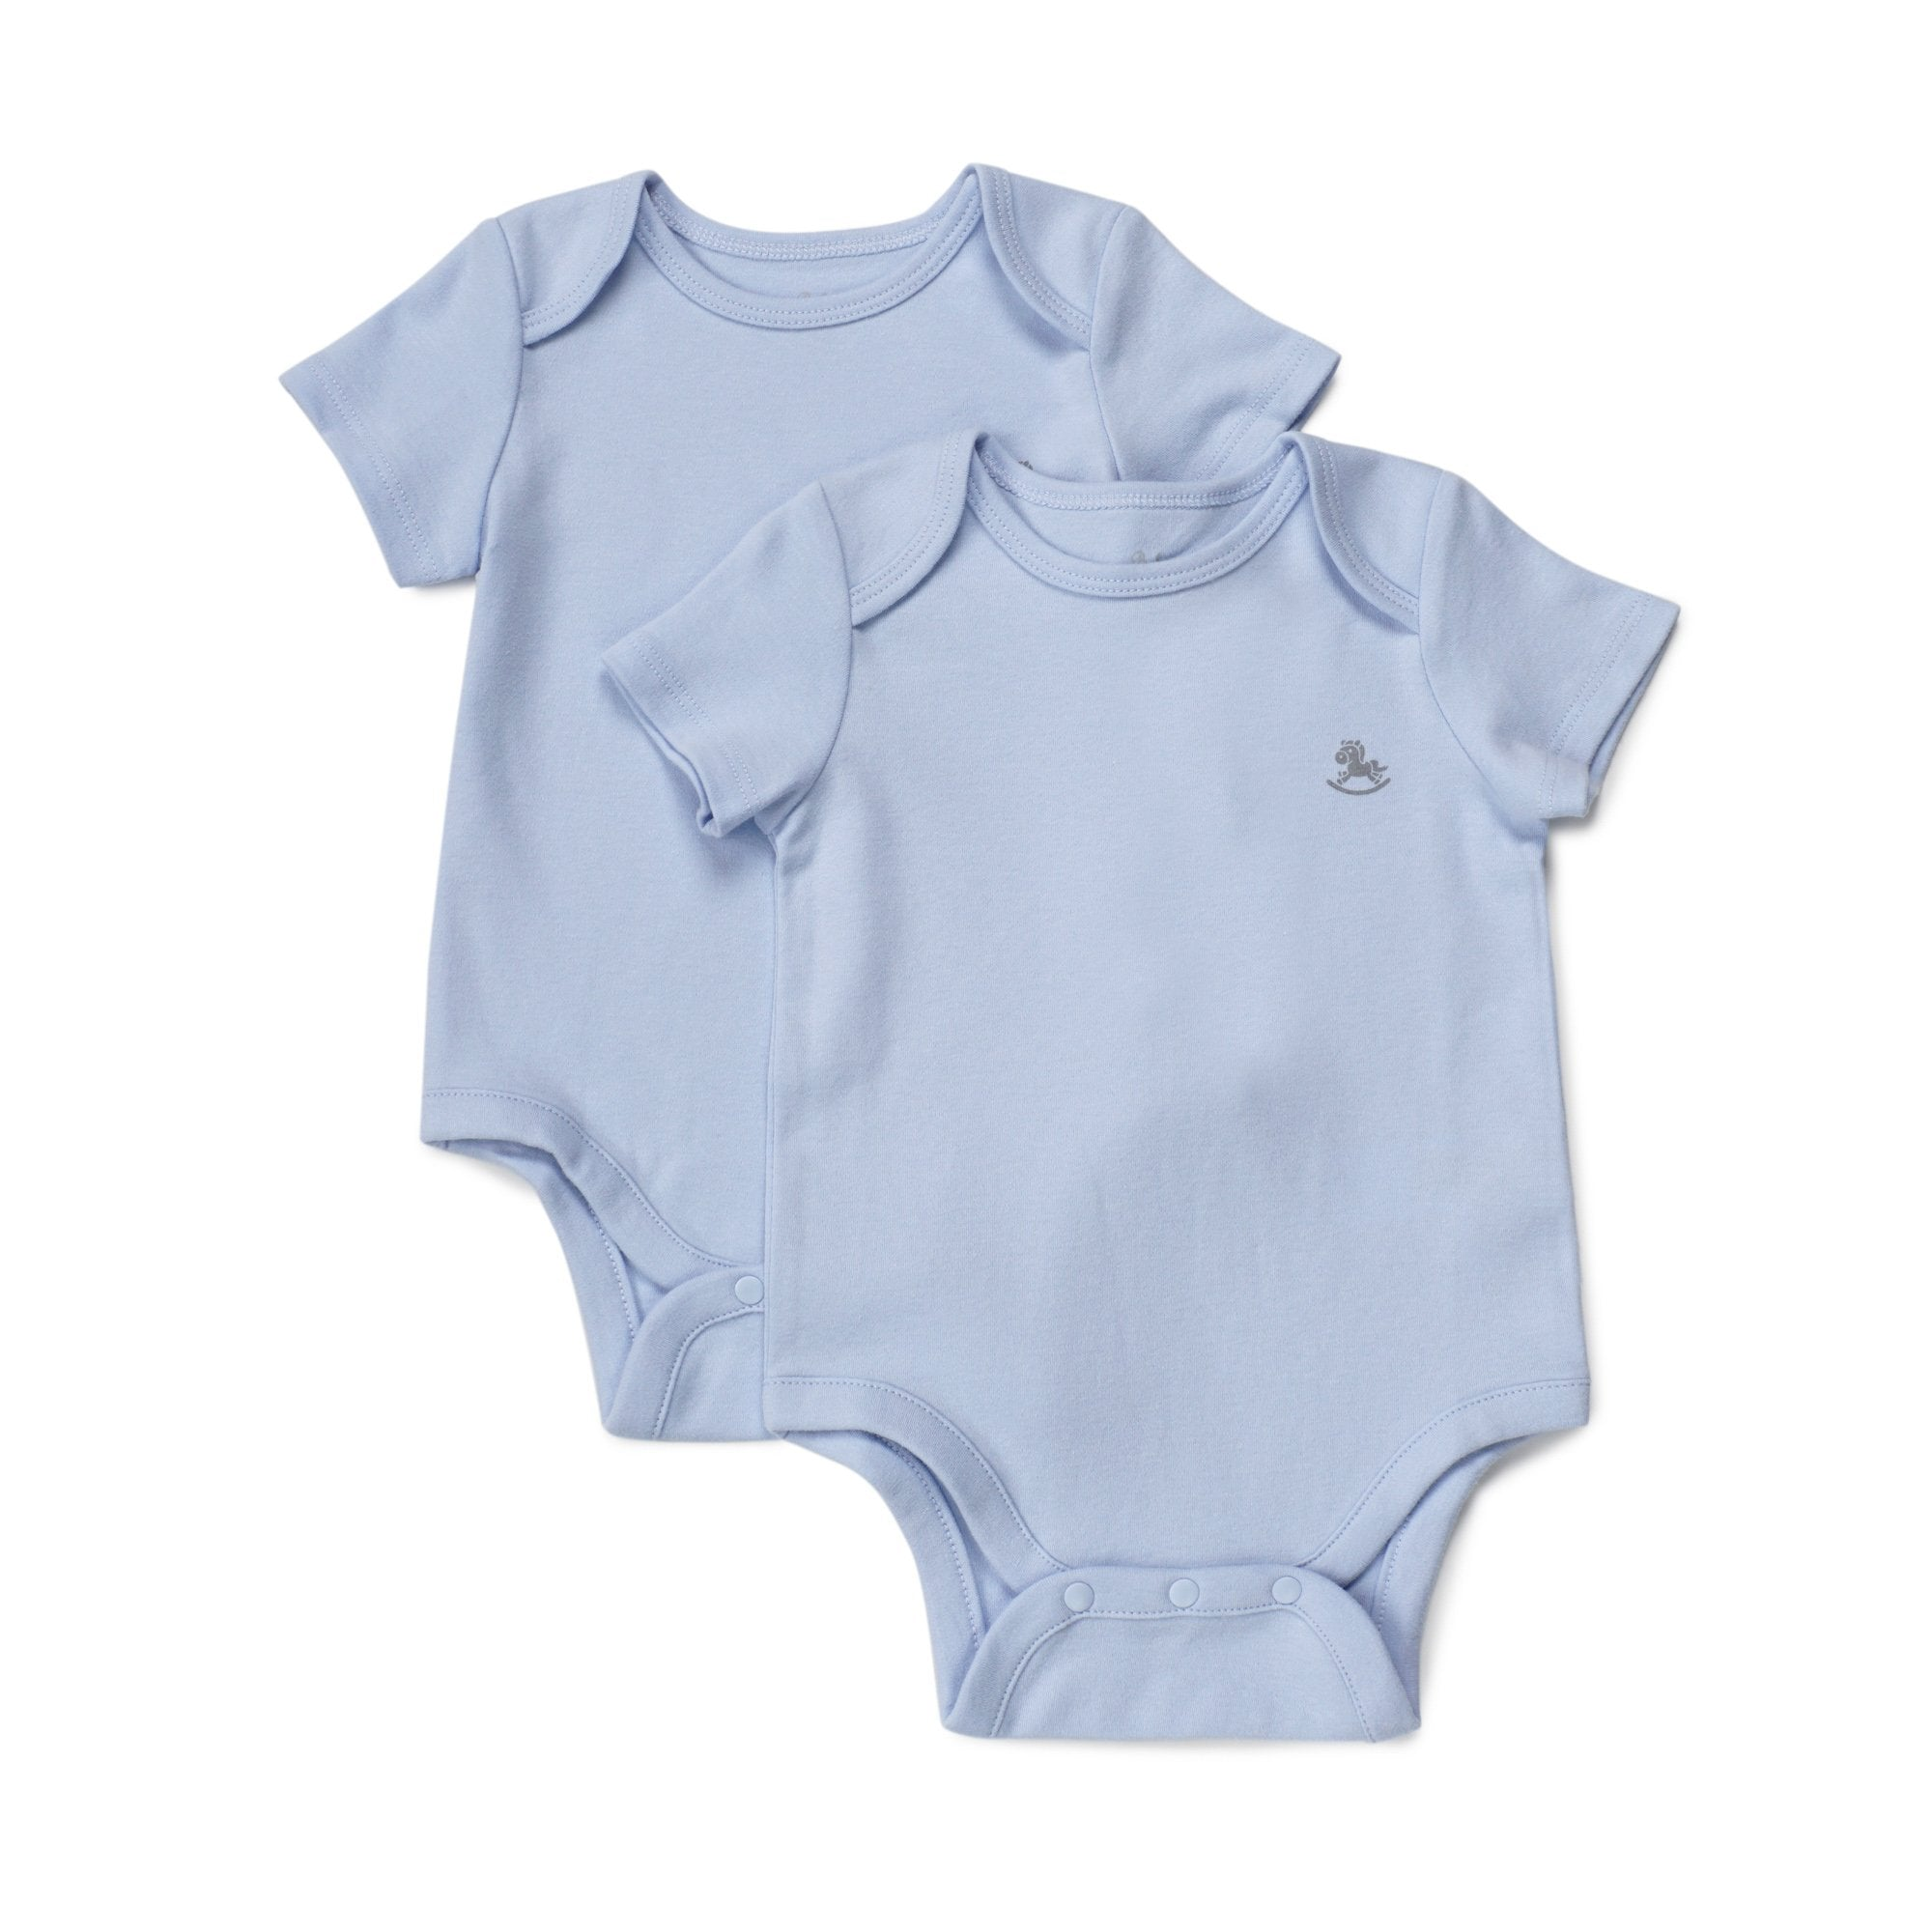 Poney Essential Boys 2-Pack Short Sleeve Bodysuits 80069